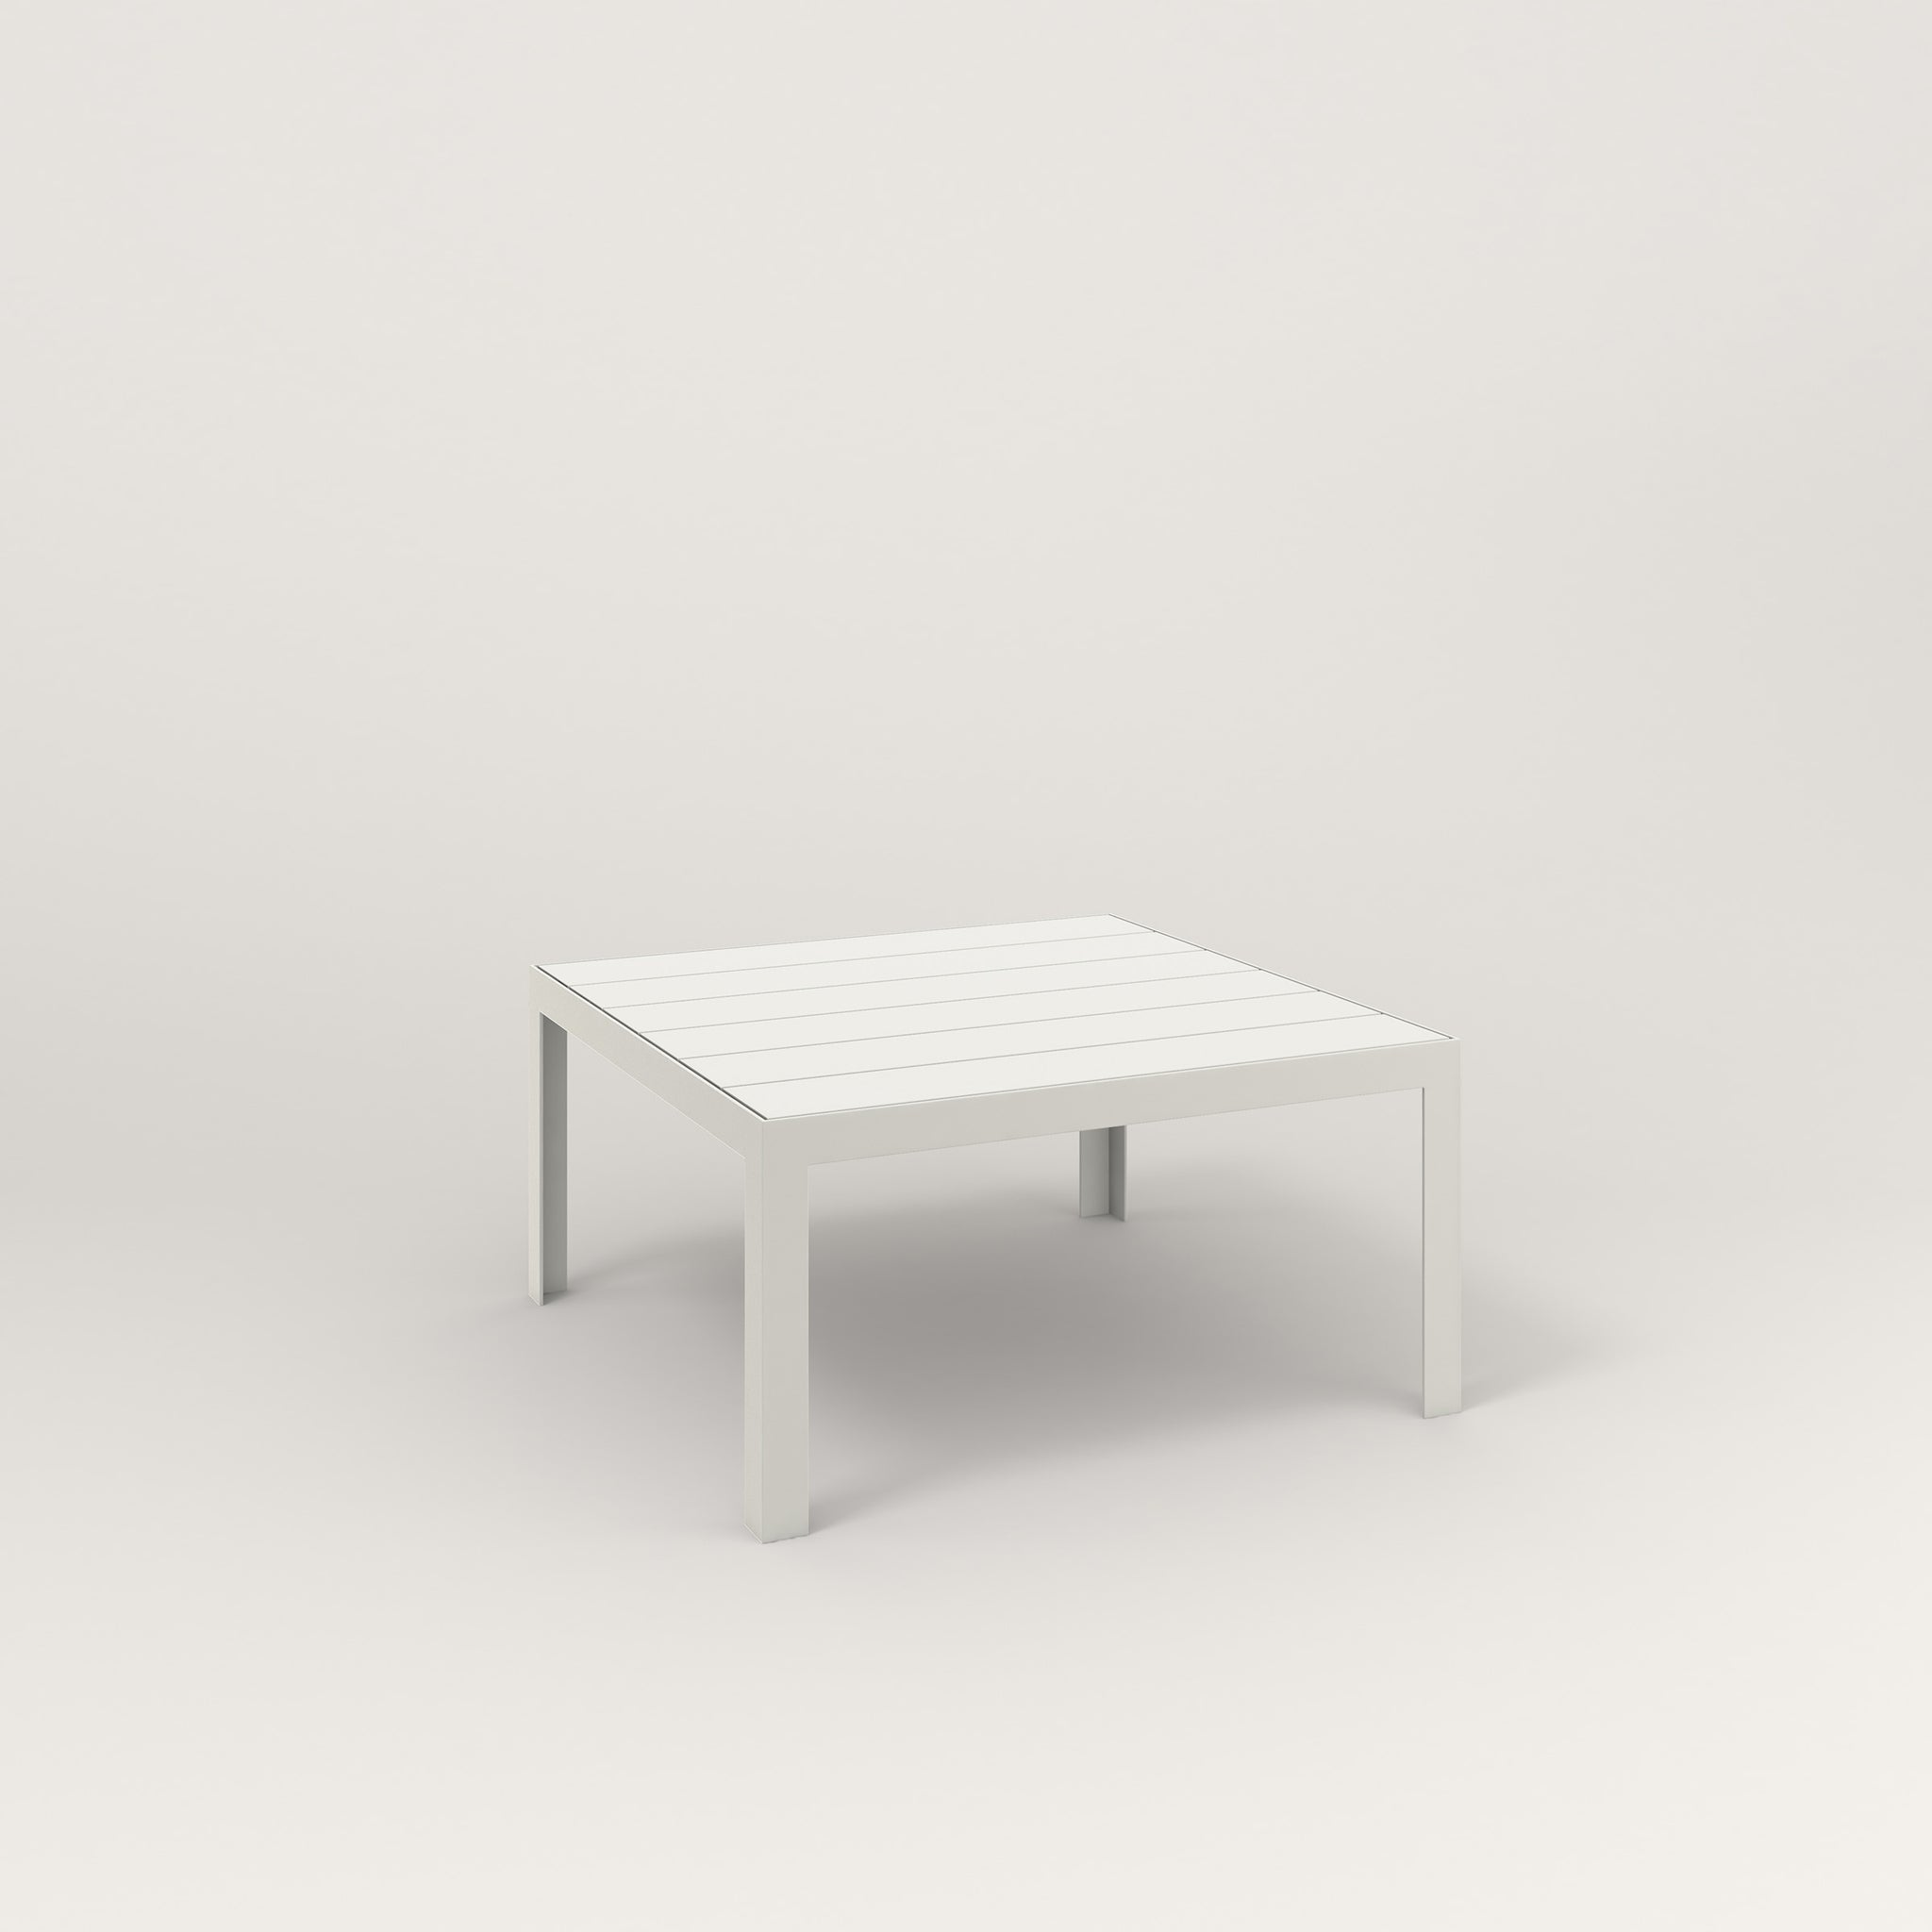 RAD Signature Coffee Table Slatted Steel in white powder coat.